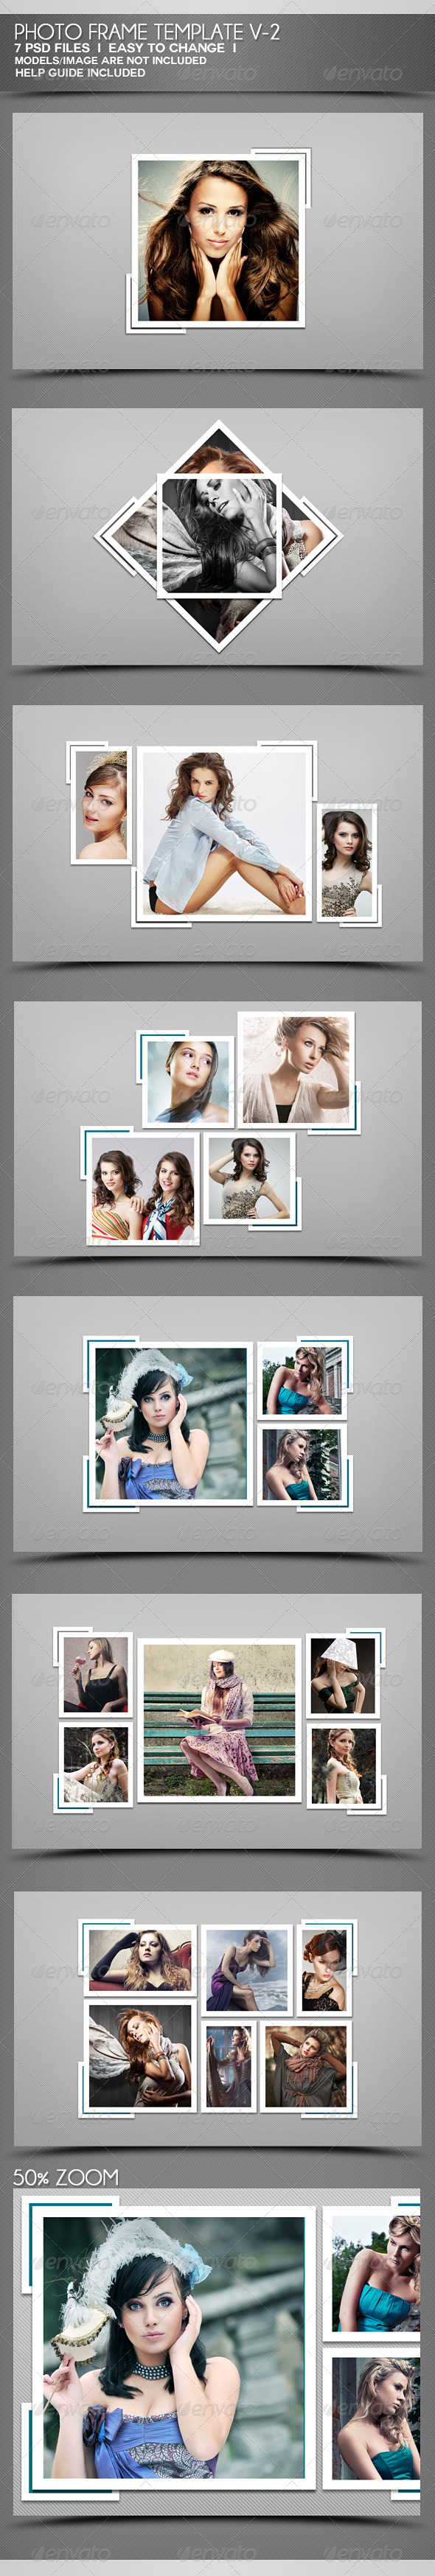 GraphicRiver Photo Frame Templates V-2 4321401